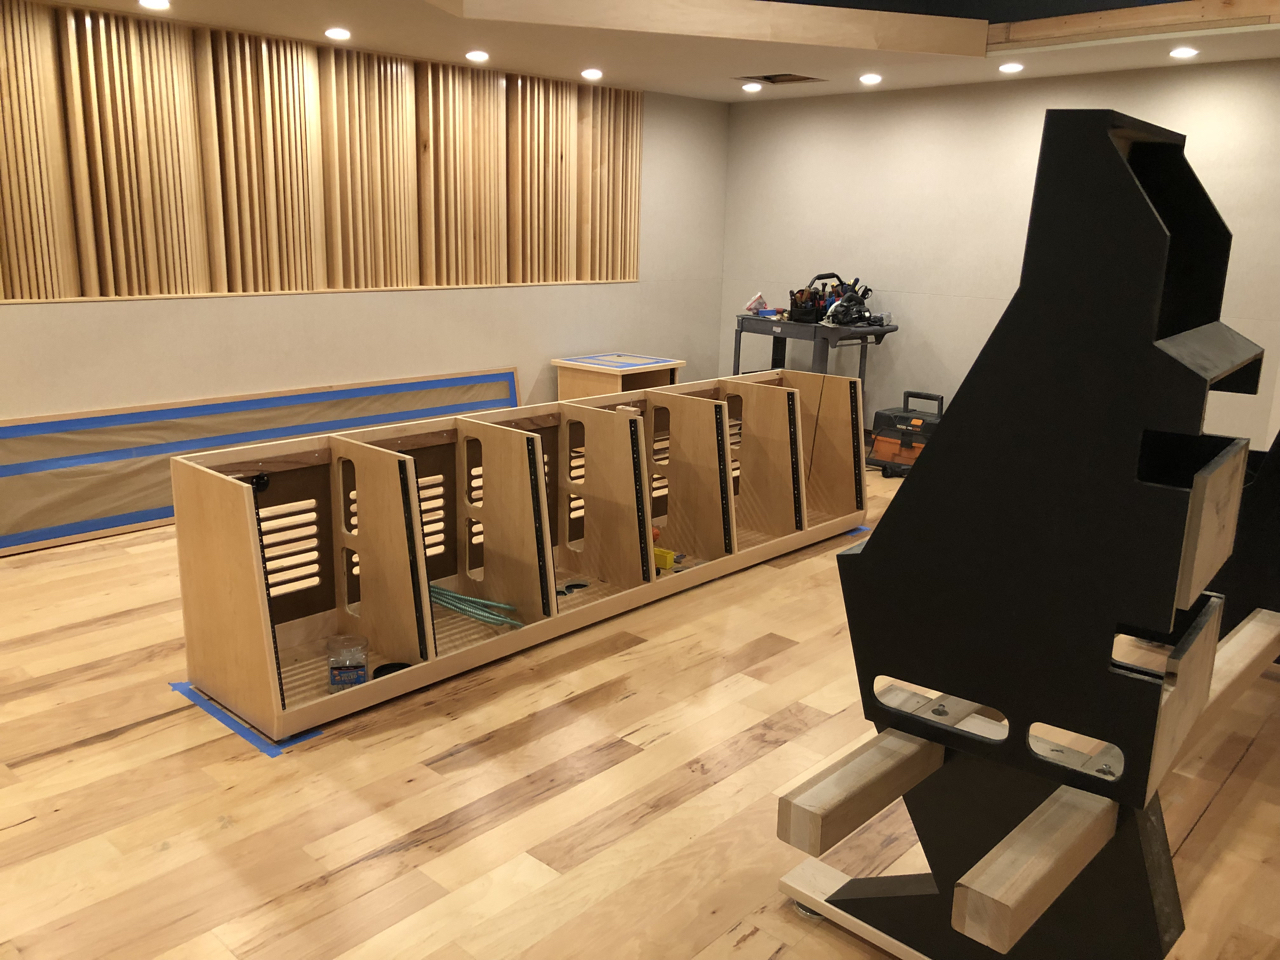 A few days before Brett Acoustics left the site they started setting the credenzas and building the desks for the consoles.